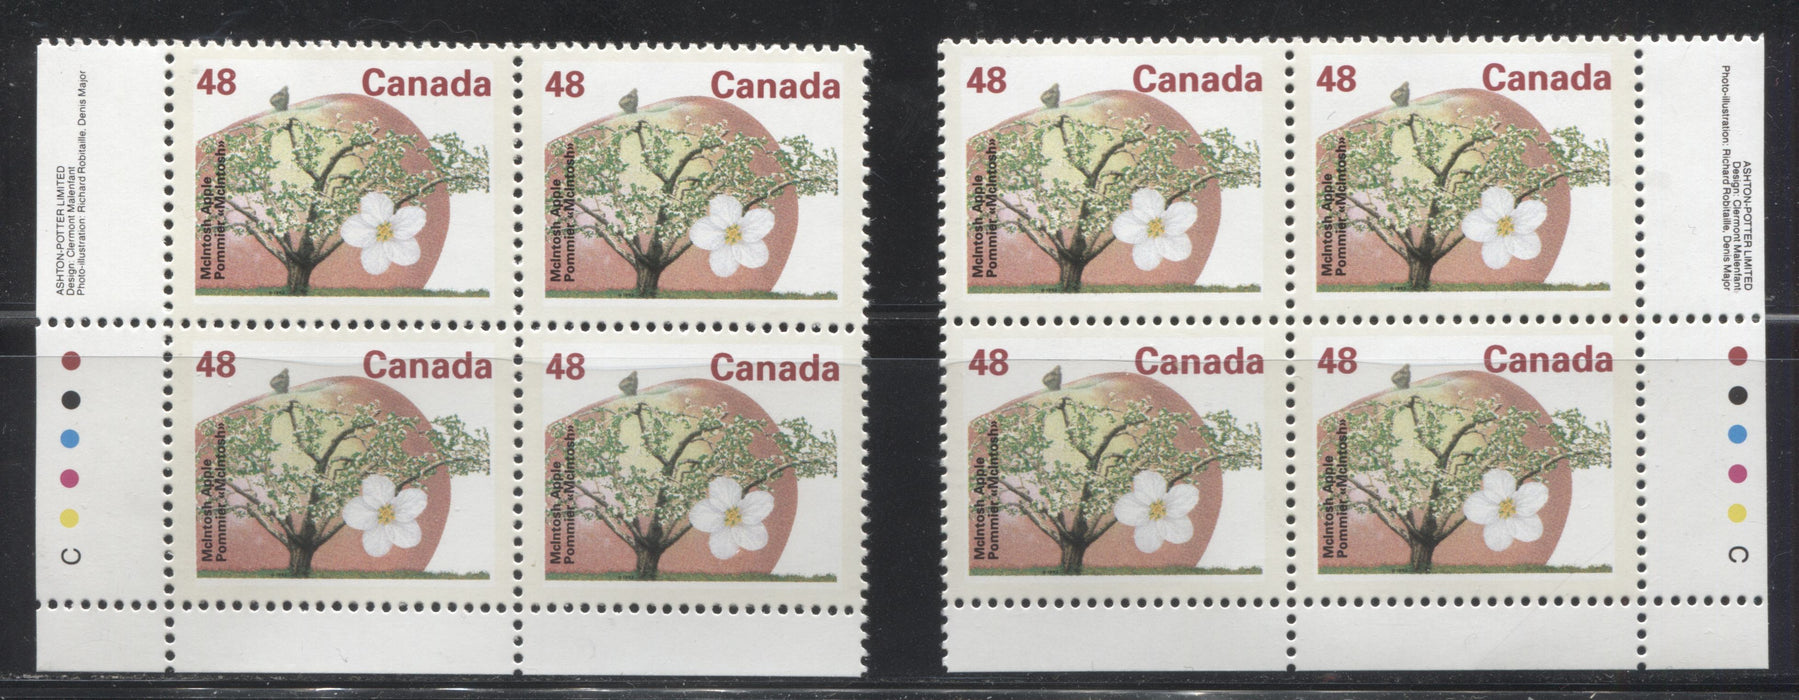 Canada #1363 48c McIntosh Apple, 1991-1998 Fruit & Flag Definitive Issue, VFNH LL and LR Inscription Blocks, Perf. 13.1 on Dead/NF Coated Papers Paper